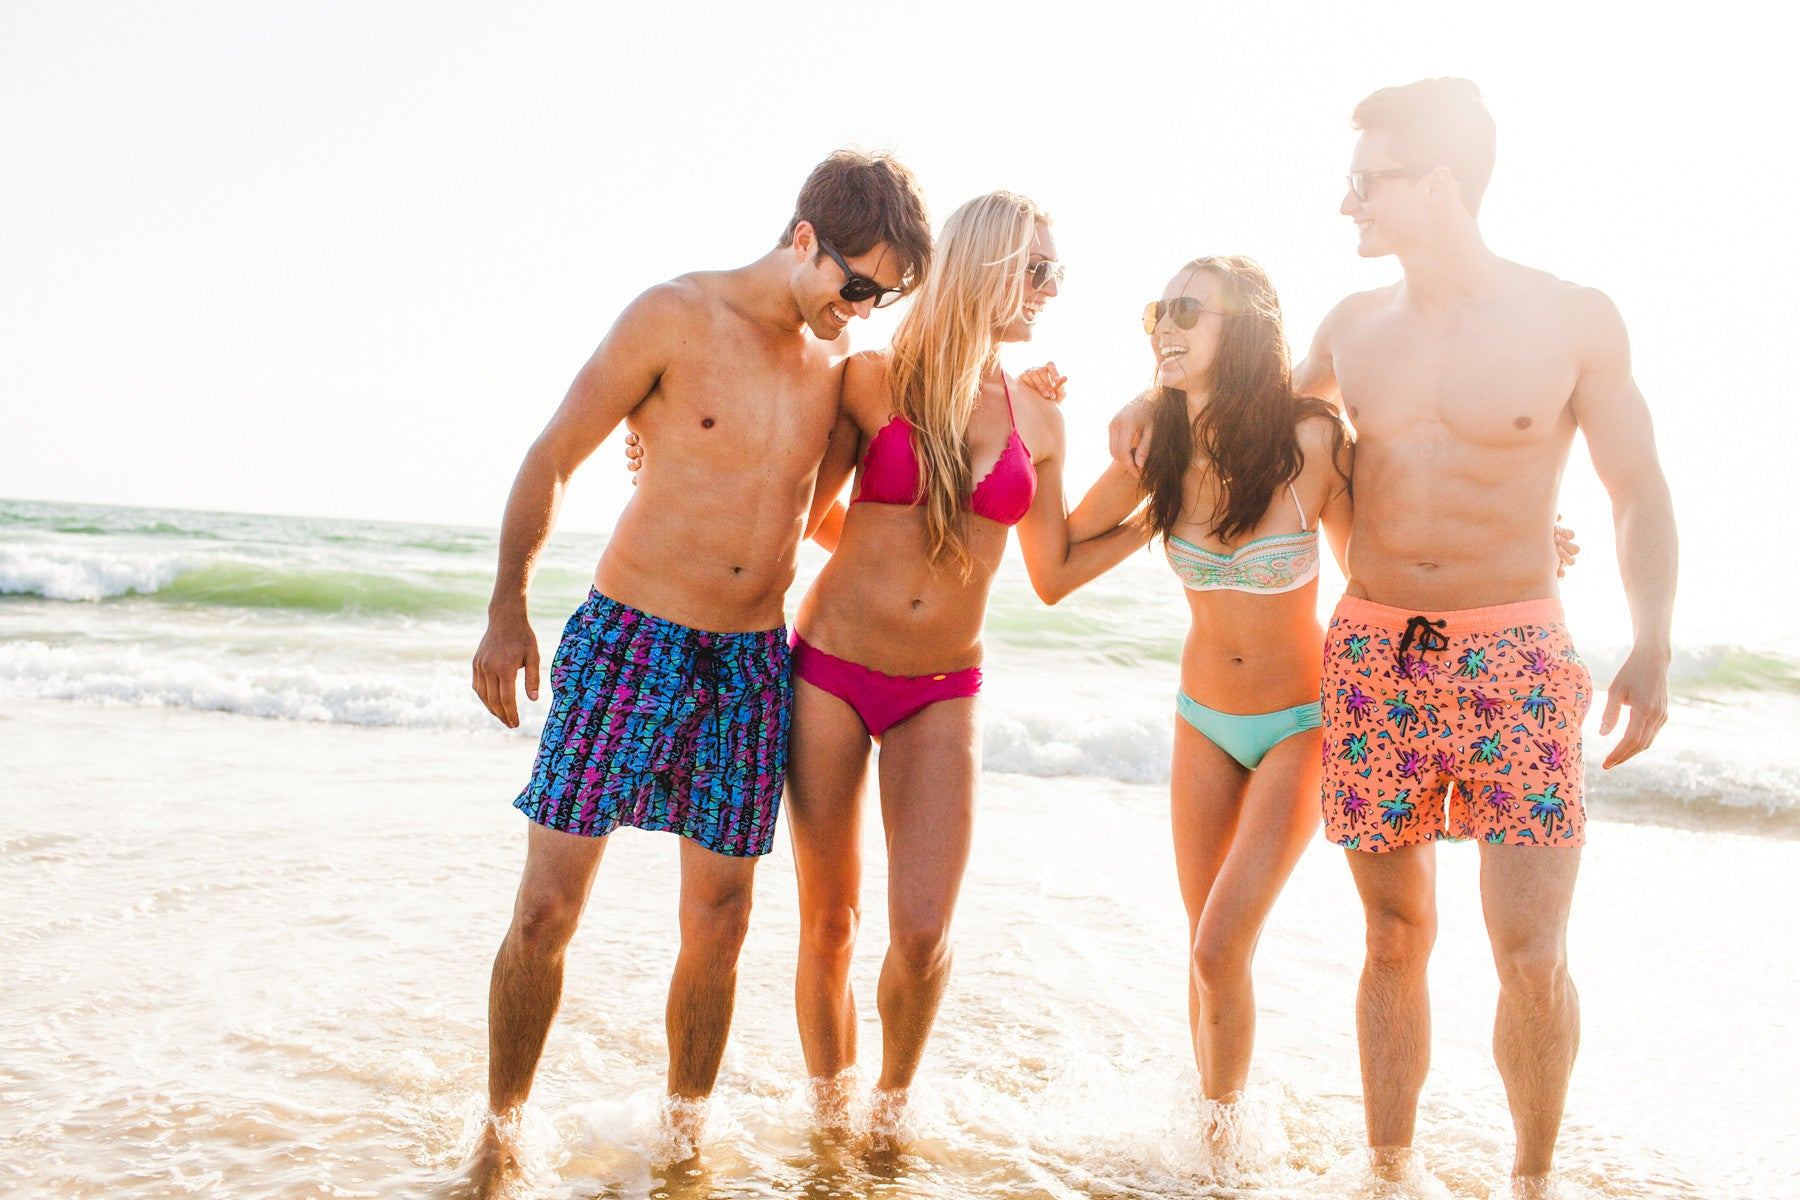 Swim Trunks - Lifestyle Shot - Hermosa Beach